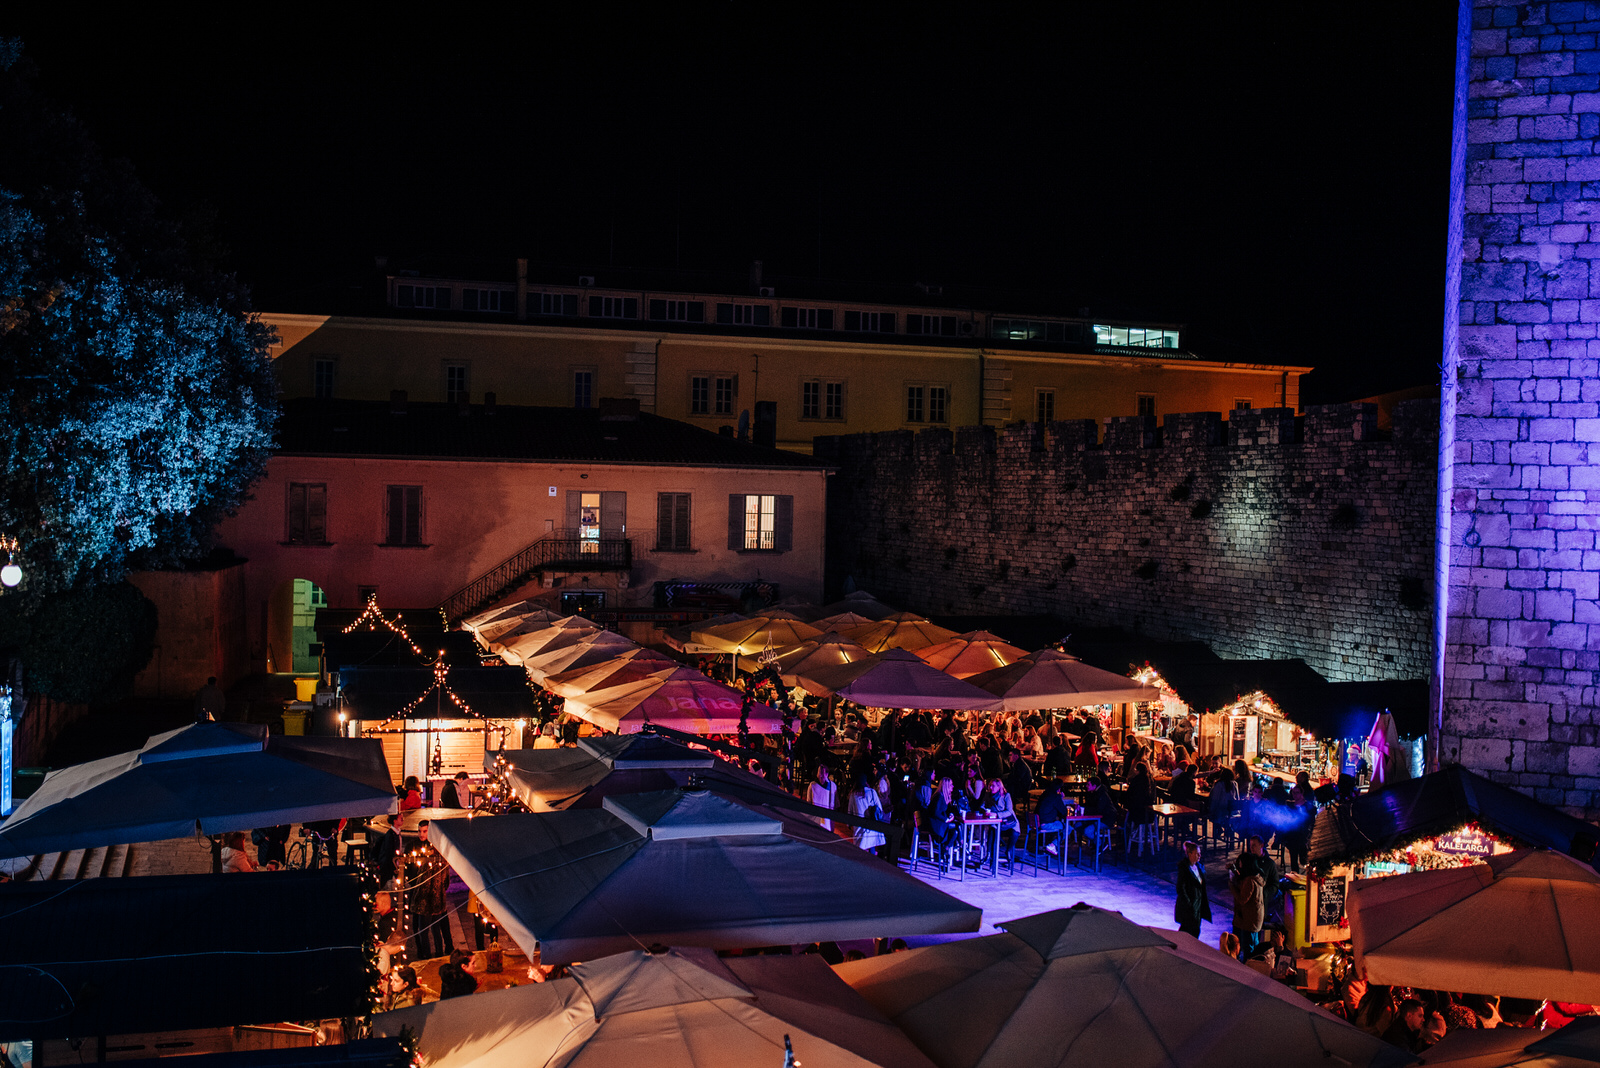 likaclub_advent-zadar-2019-17